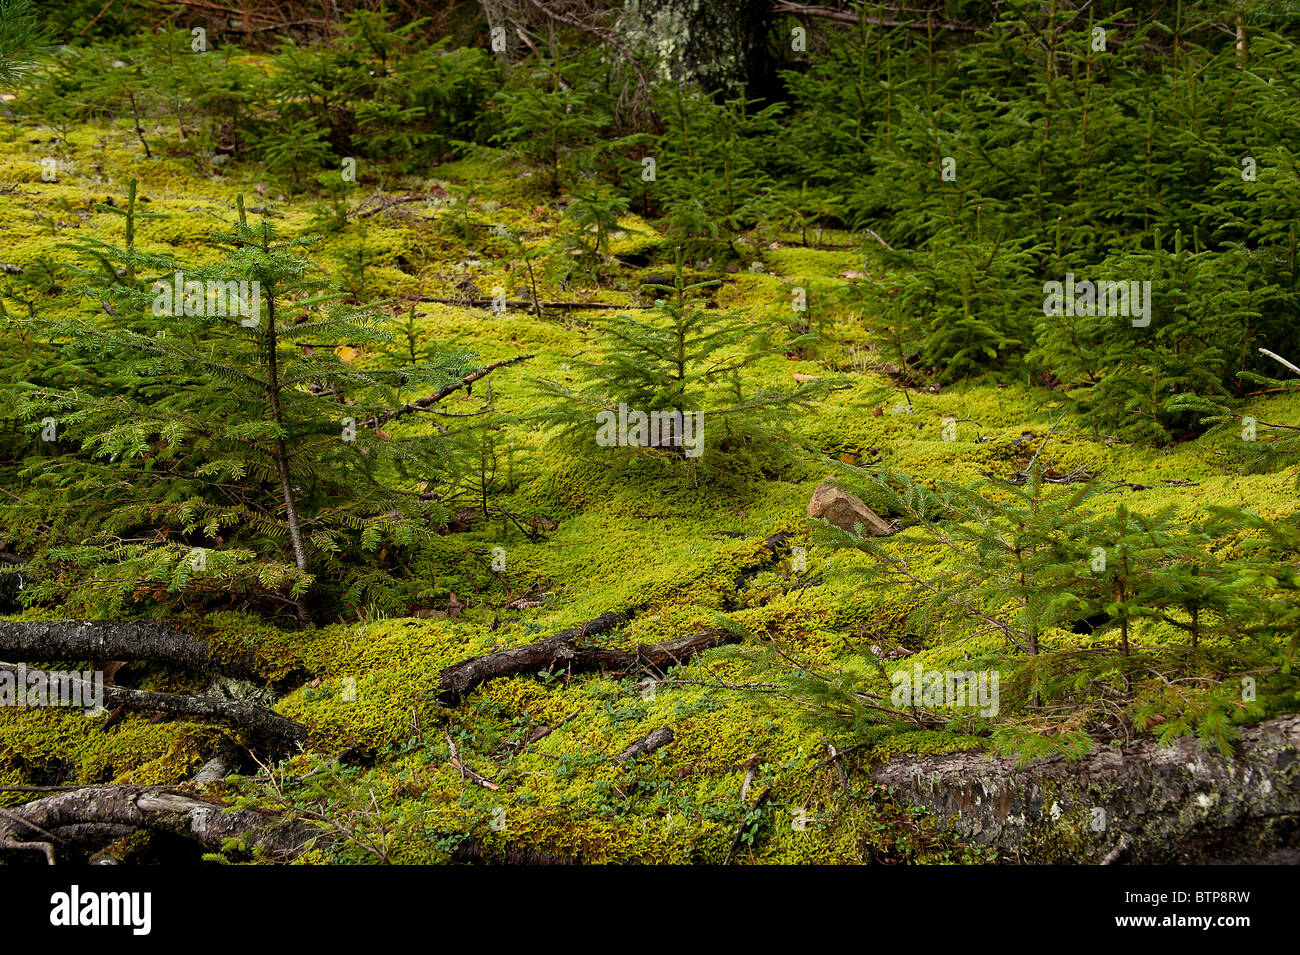 Seedling conifer trees, Pretty Marsh, Acadia NP, Maine, - Stock Image